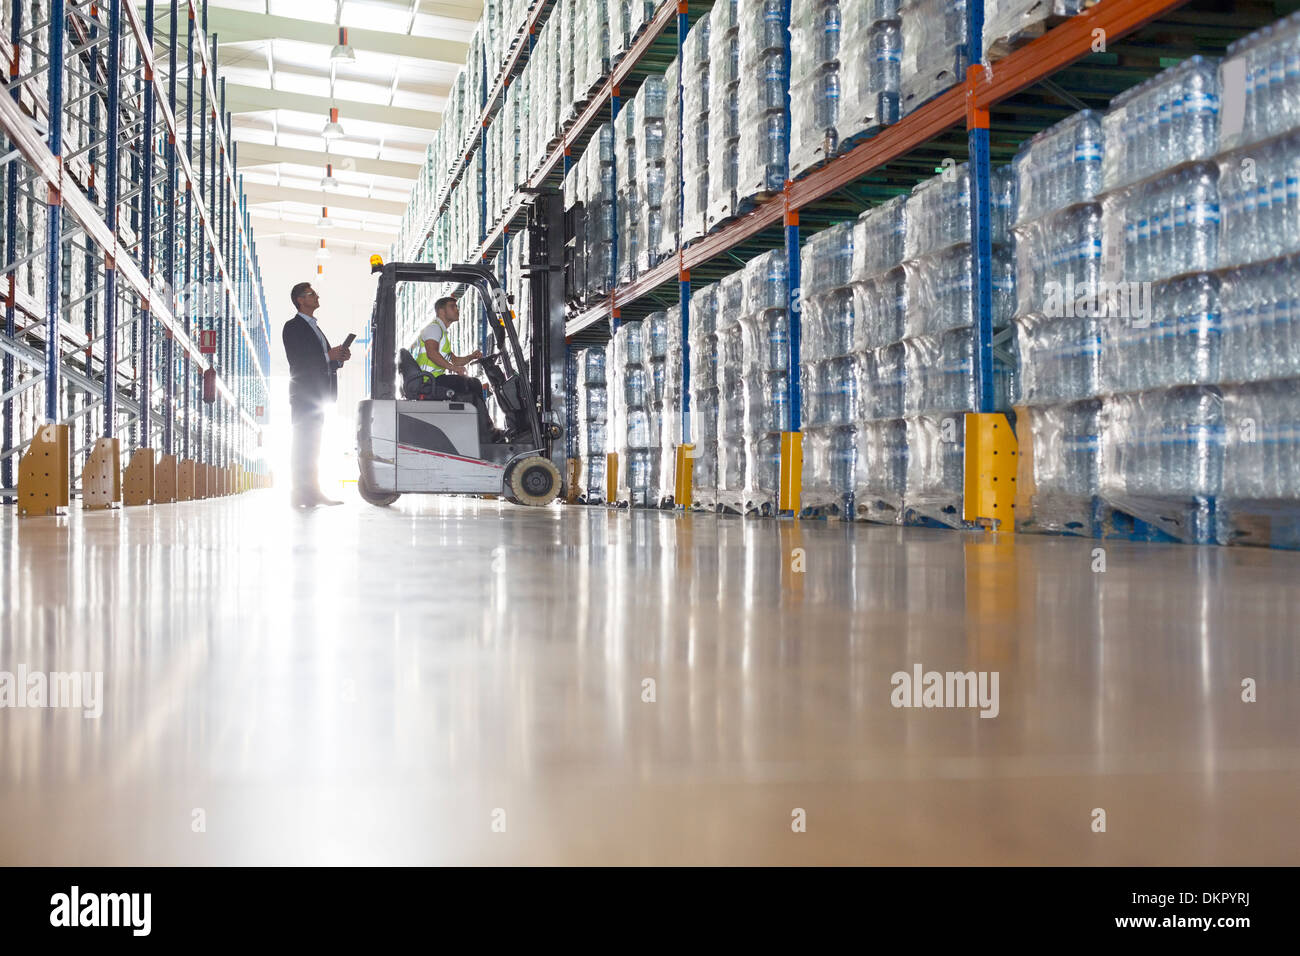 Workers with forklift in bottling warehouse - Stock Image